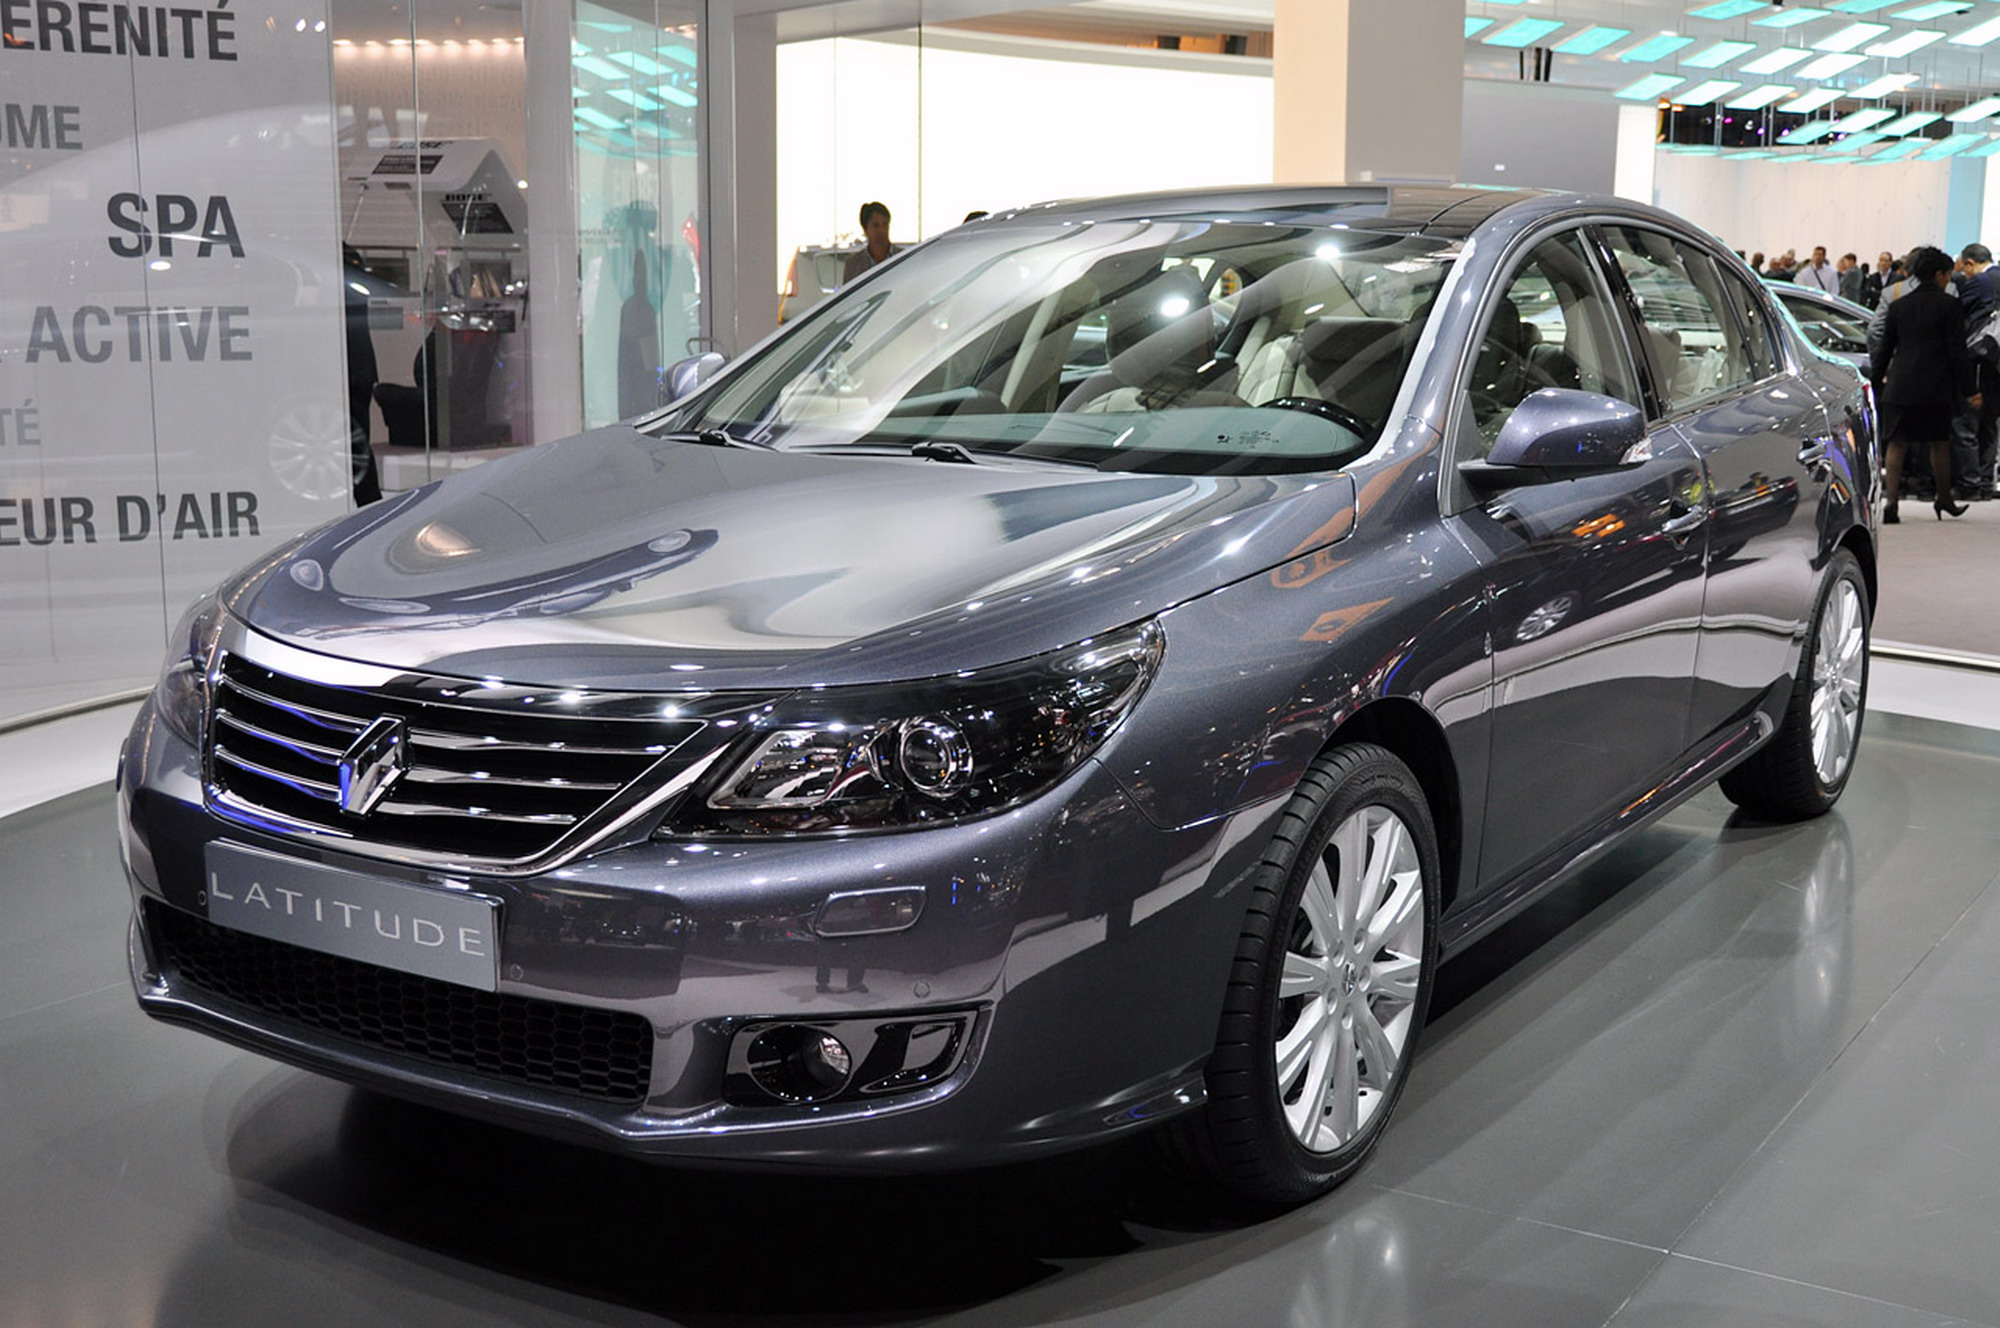 Renault Latitude   pictures, information and specs - Auto-Database.com